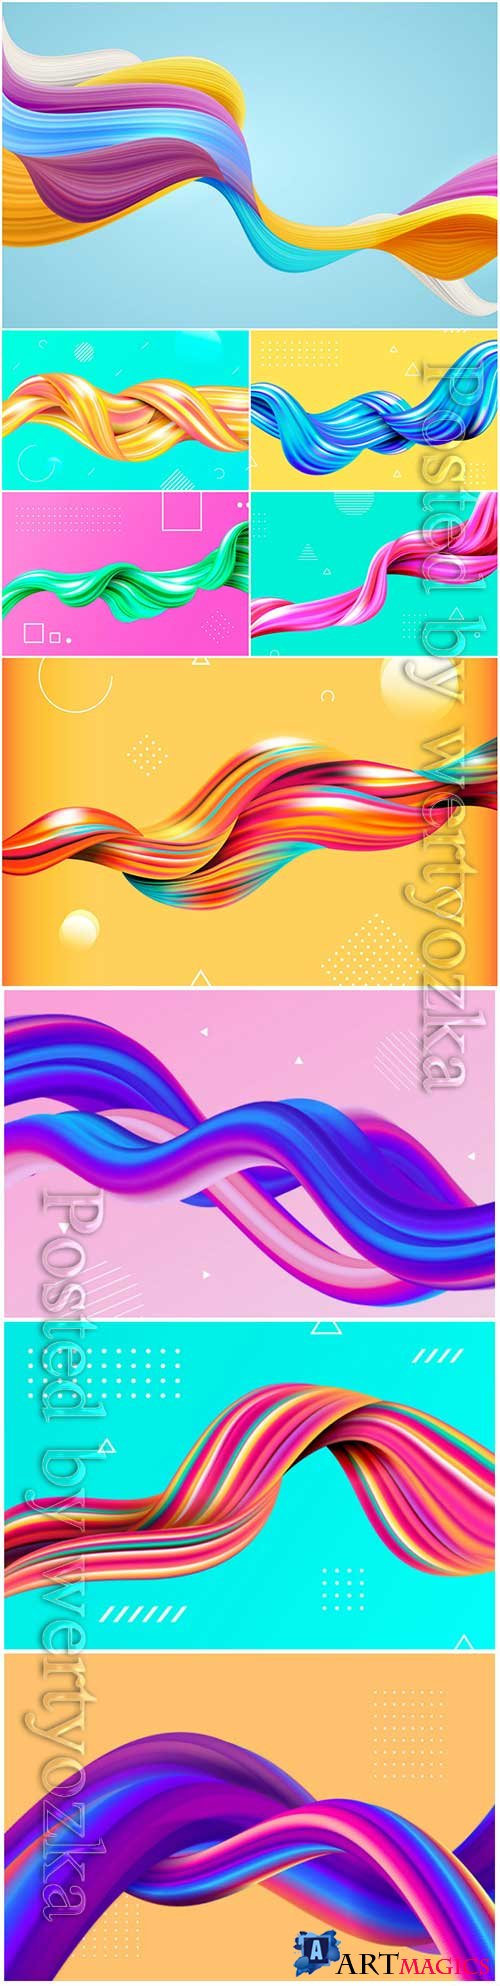 Color flow background vector illustration